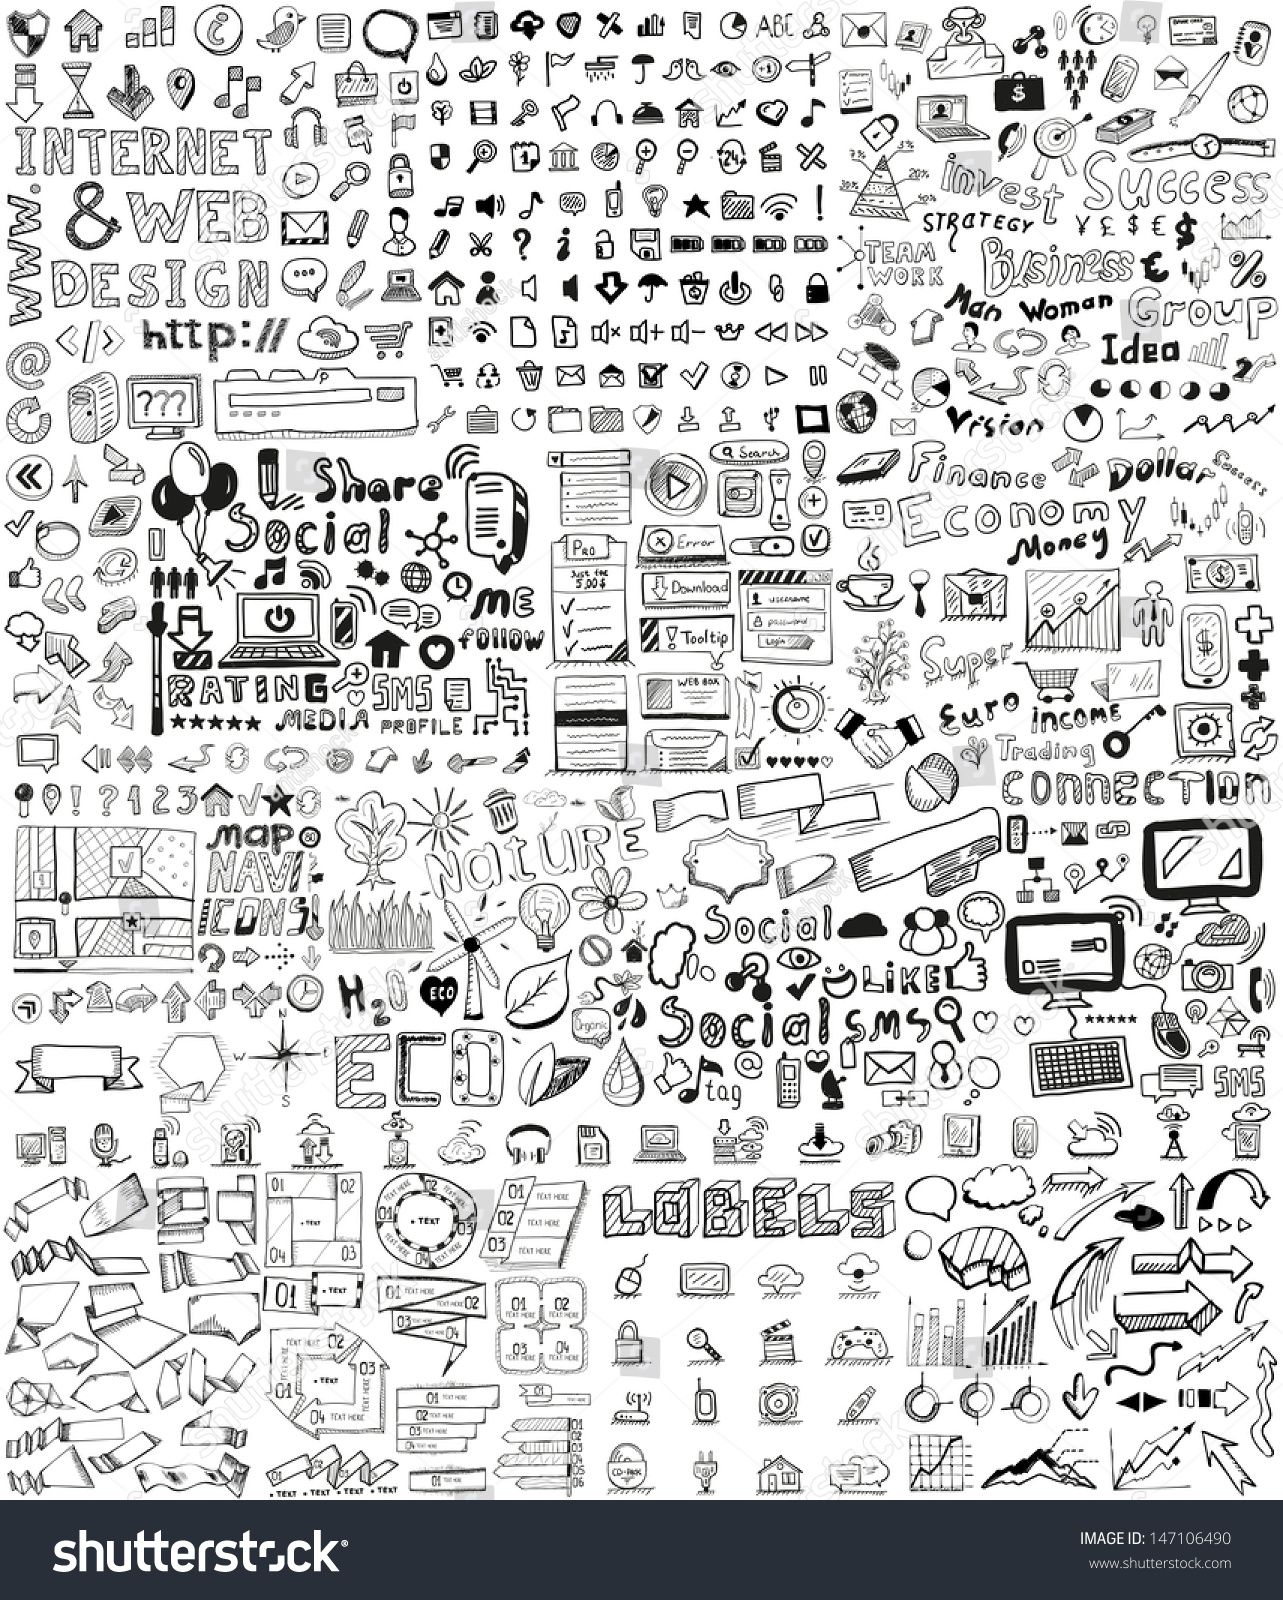 Huge set of business, social, technology hand drawn elements / doodles #147106490